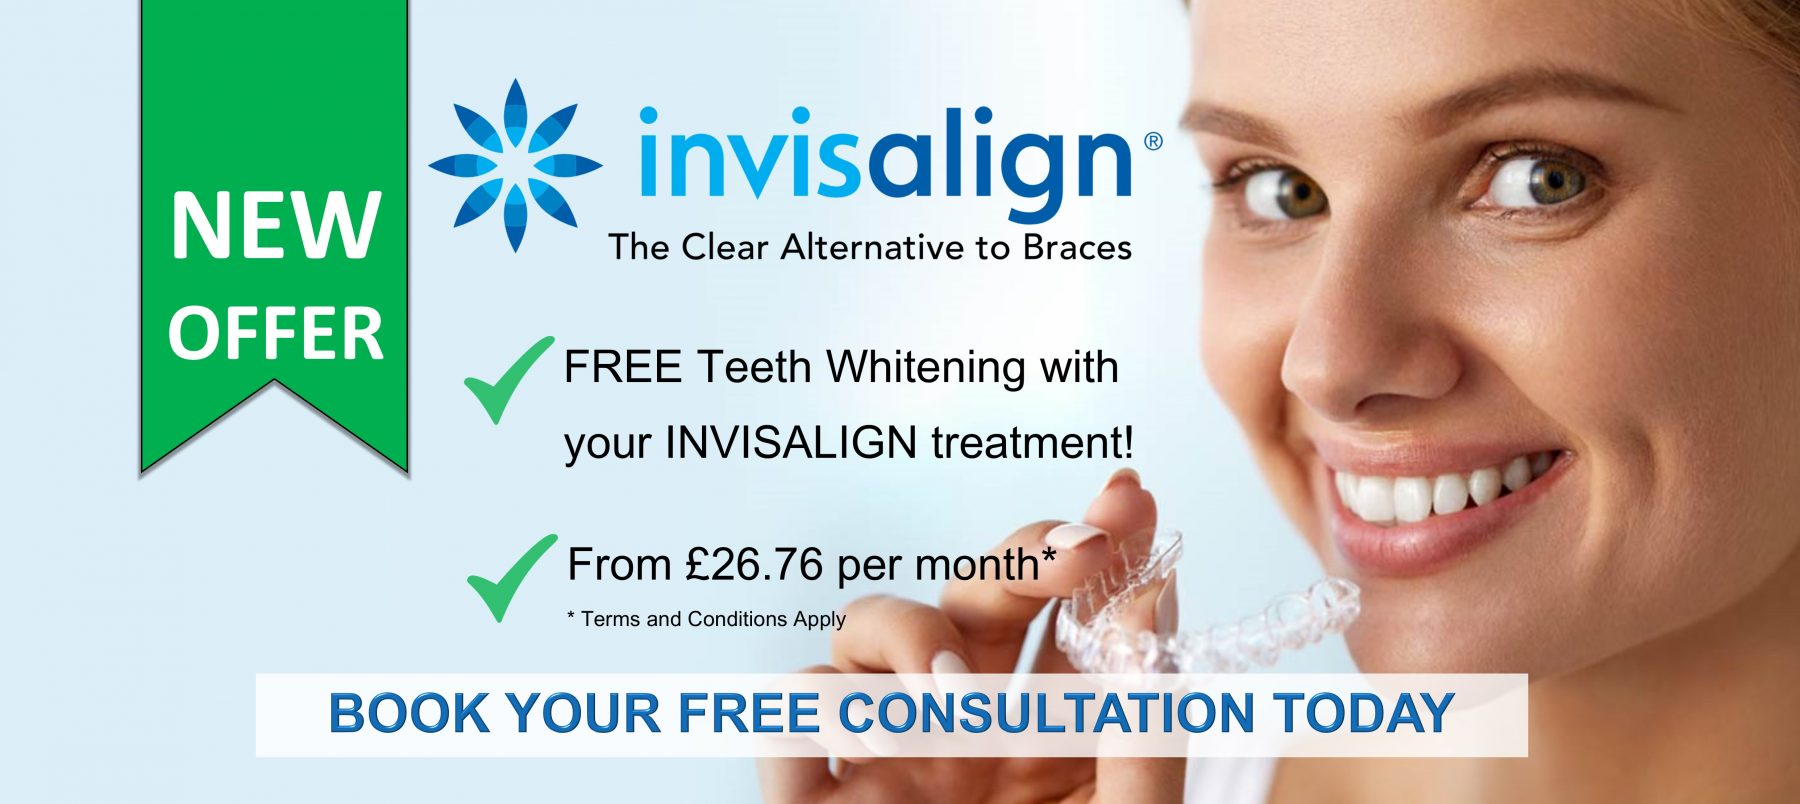 Invisalign offer Brentwood